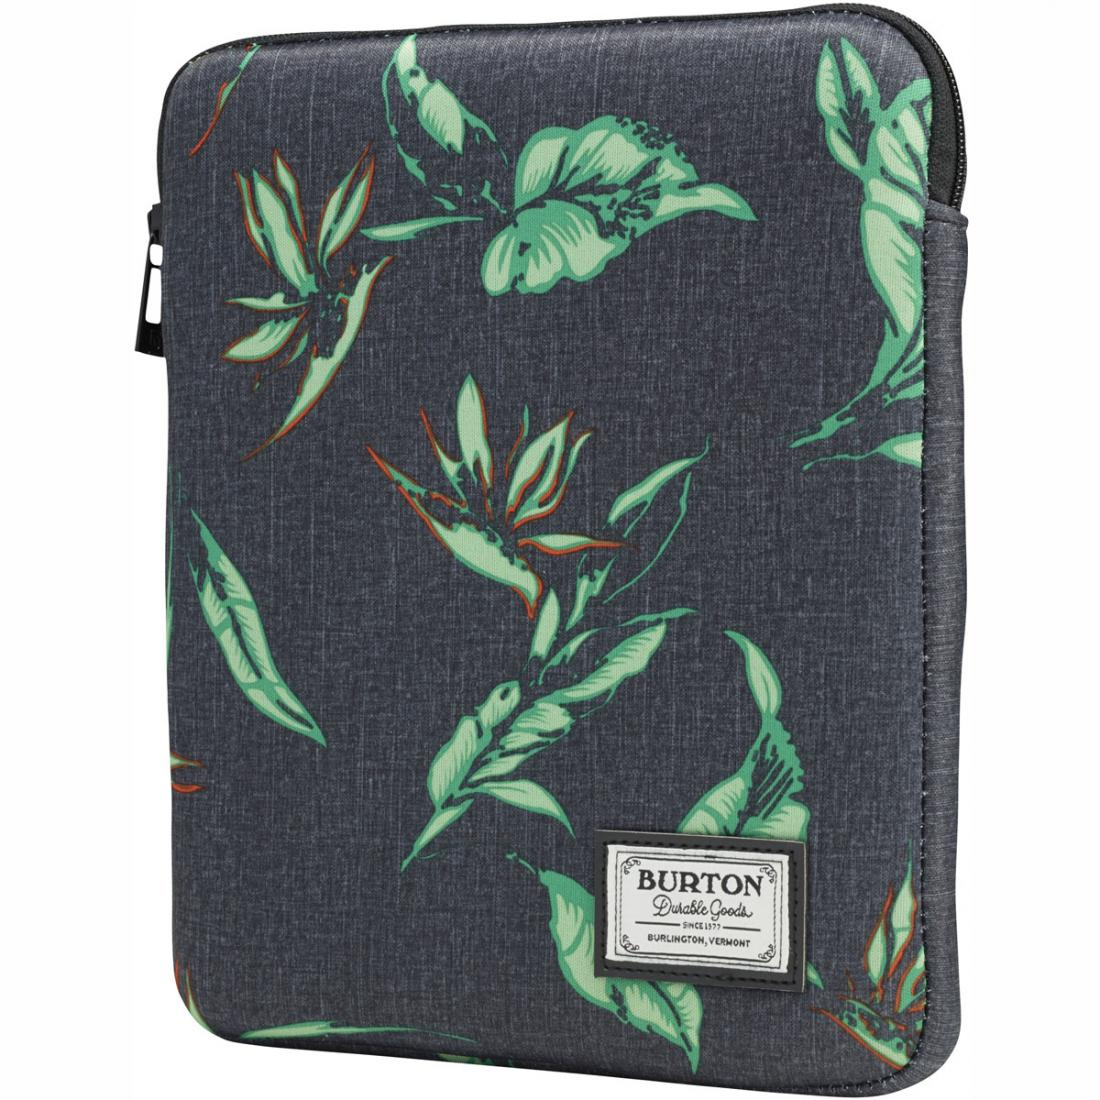 Burton Сумка для дорож.принадлежностей TABLET SLEEVE (, HAWAIIAN HEATHER, , WIN14) hawaiian tropic spf20 blingbling